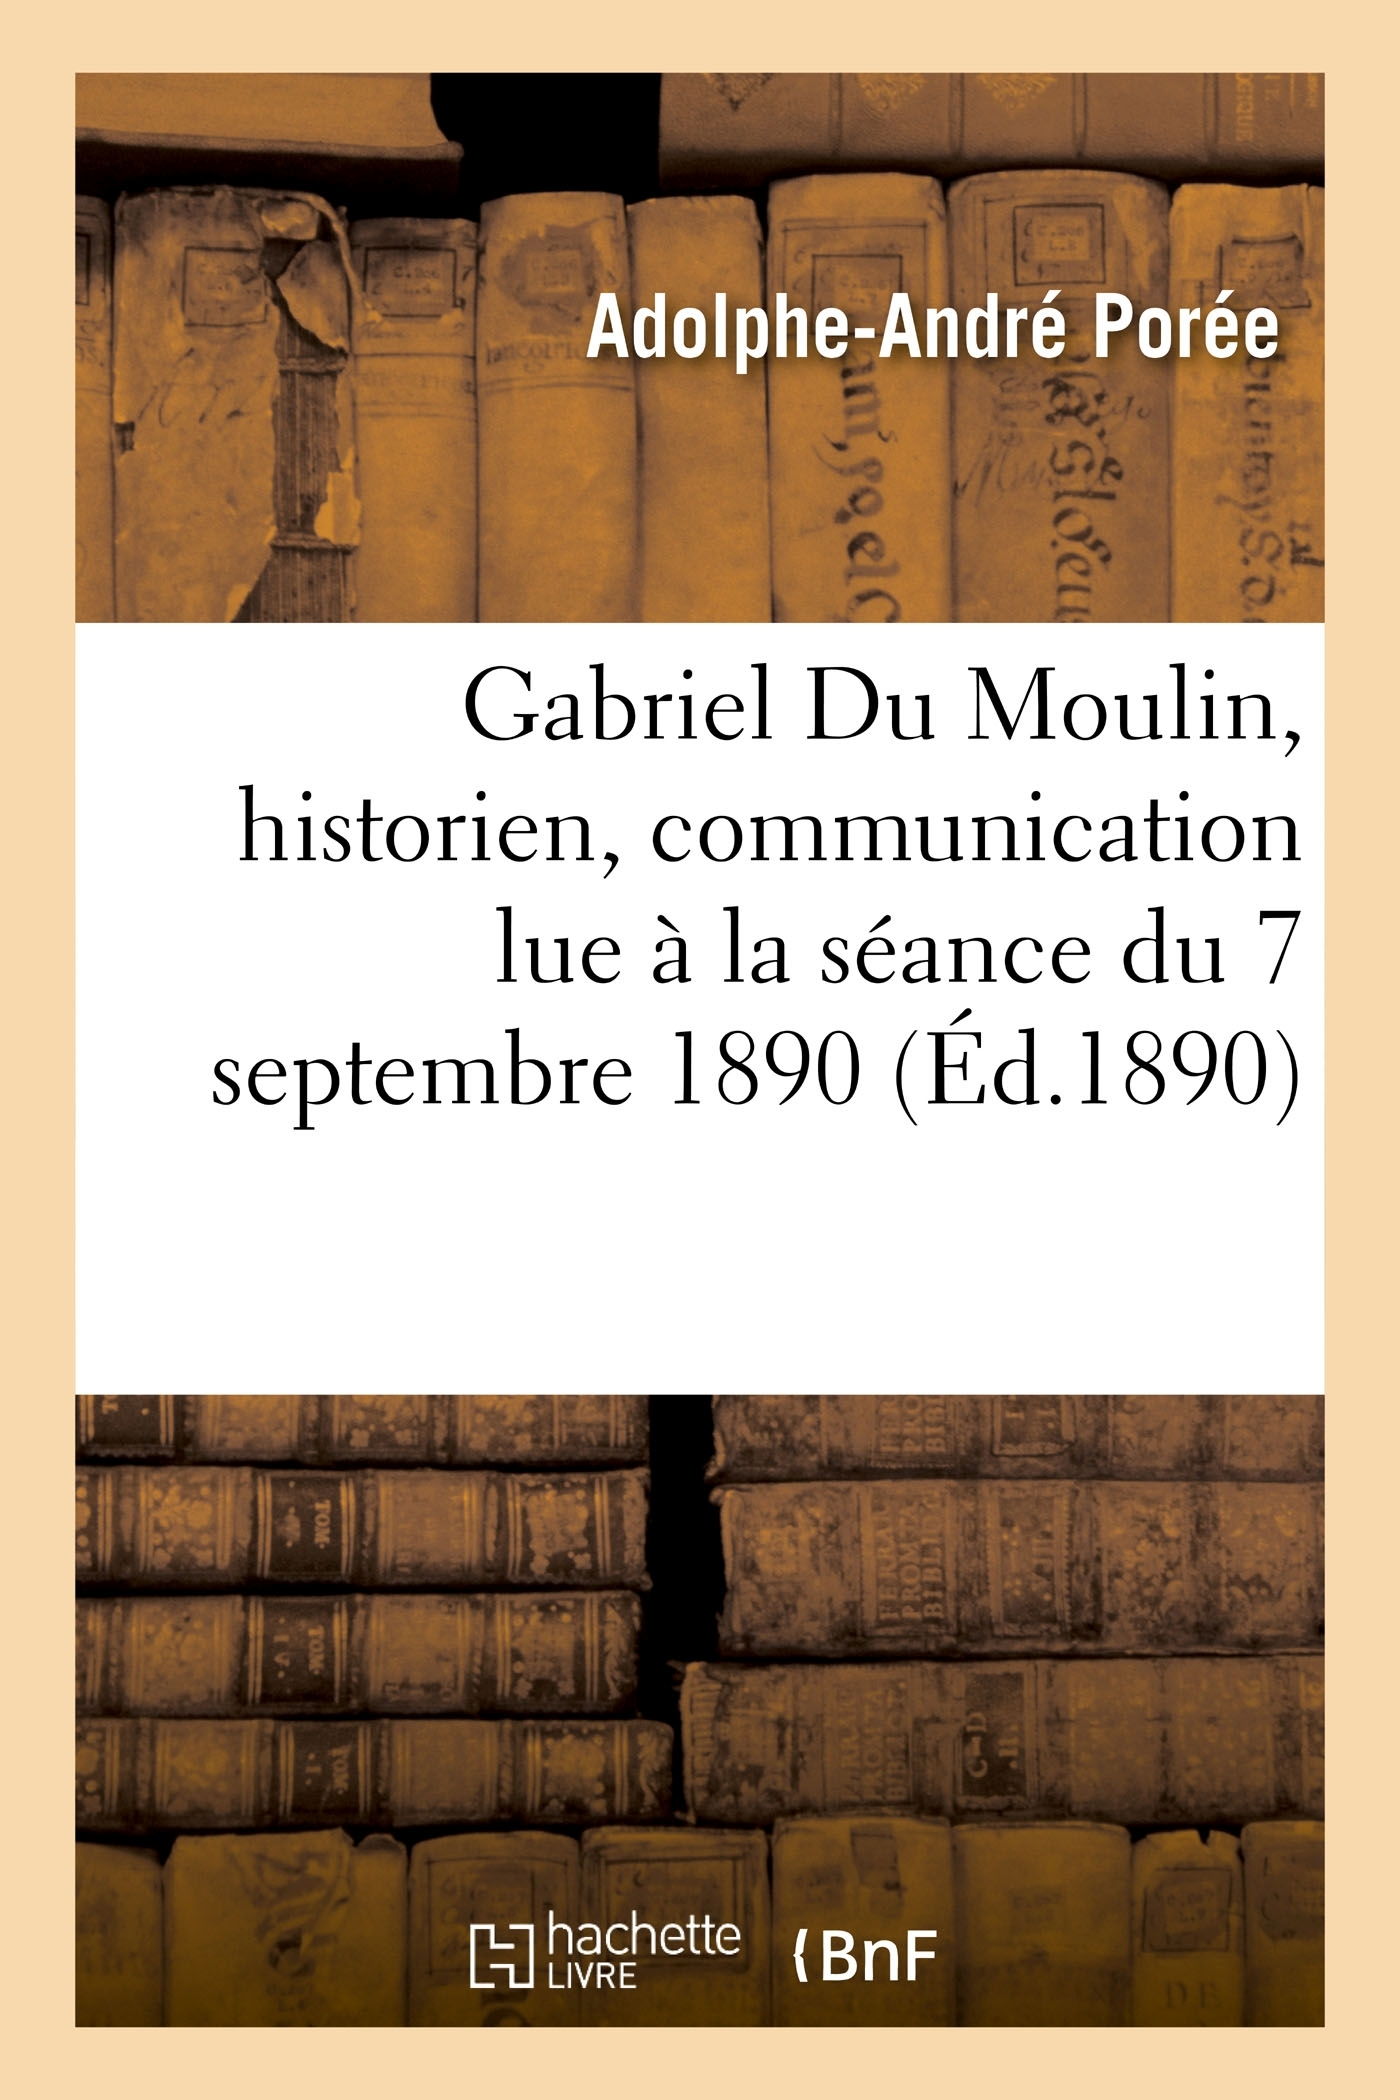 GABRIEL DU MOULIN, HISTORIEN, COMMUNICATION LUE A LA SEANCE DU 7 SEPTEMBRE 1890